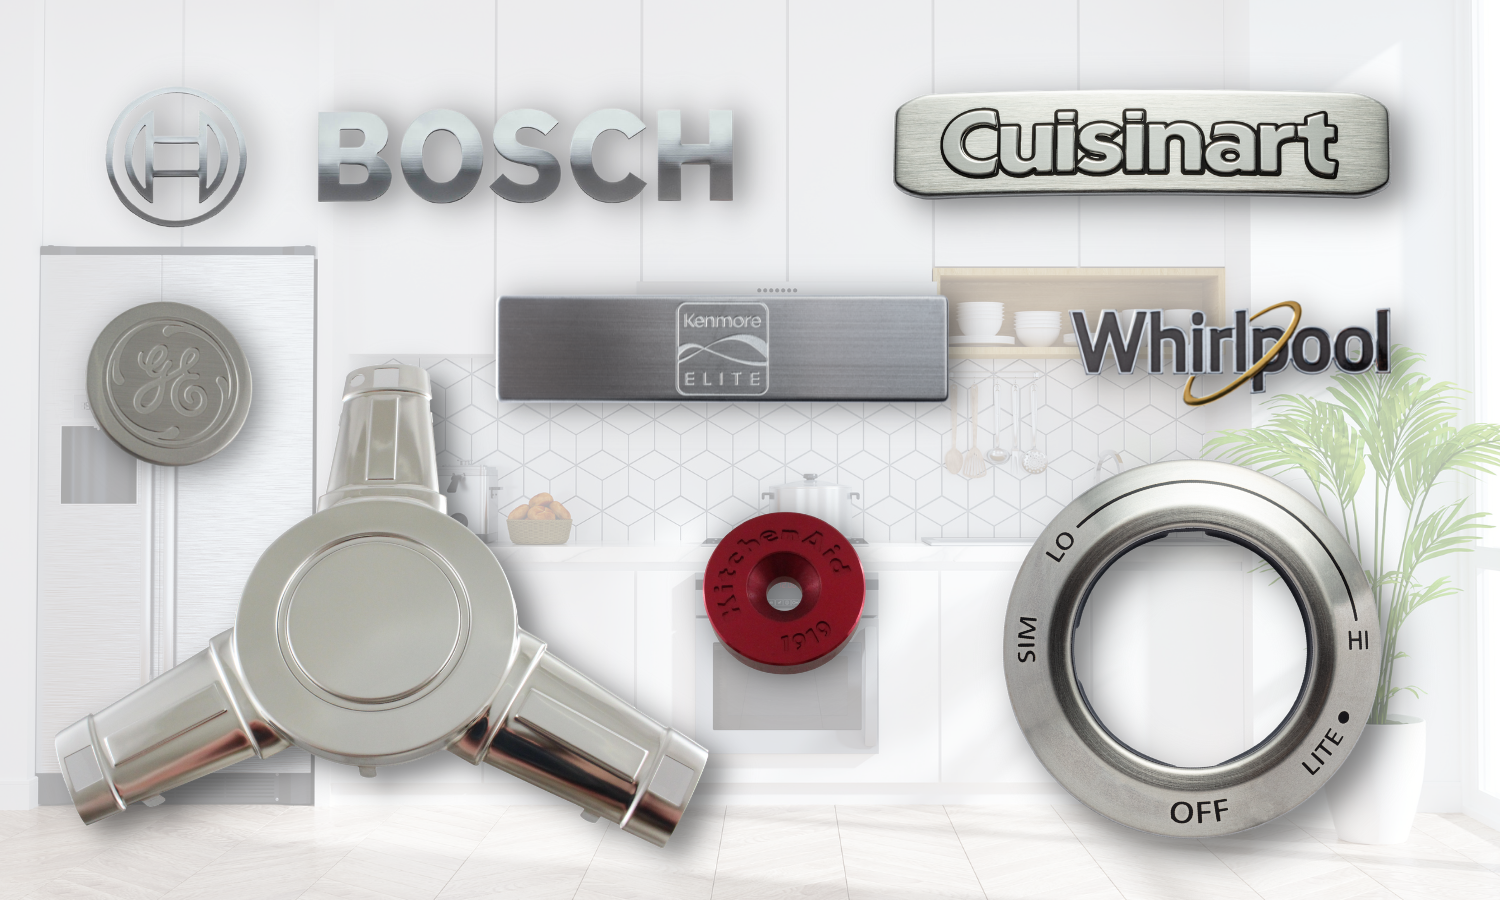 collage of parts used to brand appliance. chrome BOSCH letters, embossed Cuisinart rectangle badge with black edging on letters, black, silver, and gold Whirlpool logo, silver rectangle handle, yellow chrome formed triangular shaped piece, dark red circular KitchenAid cap, knob collar with printed indicators